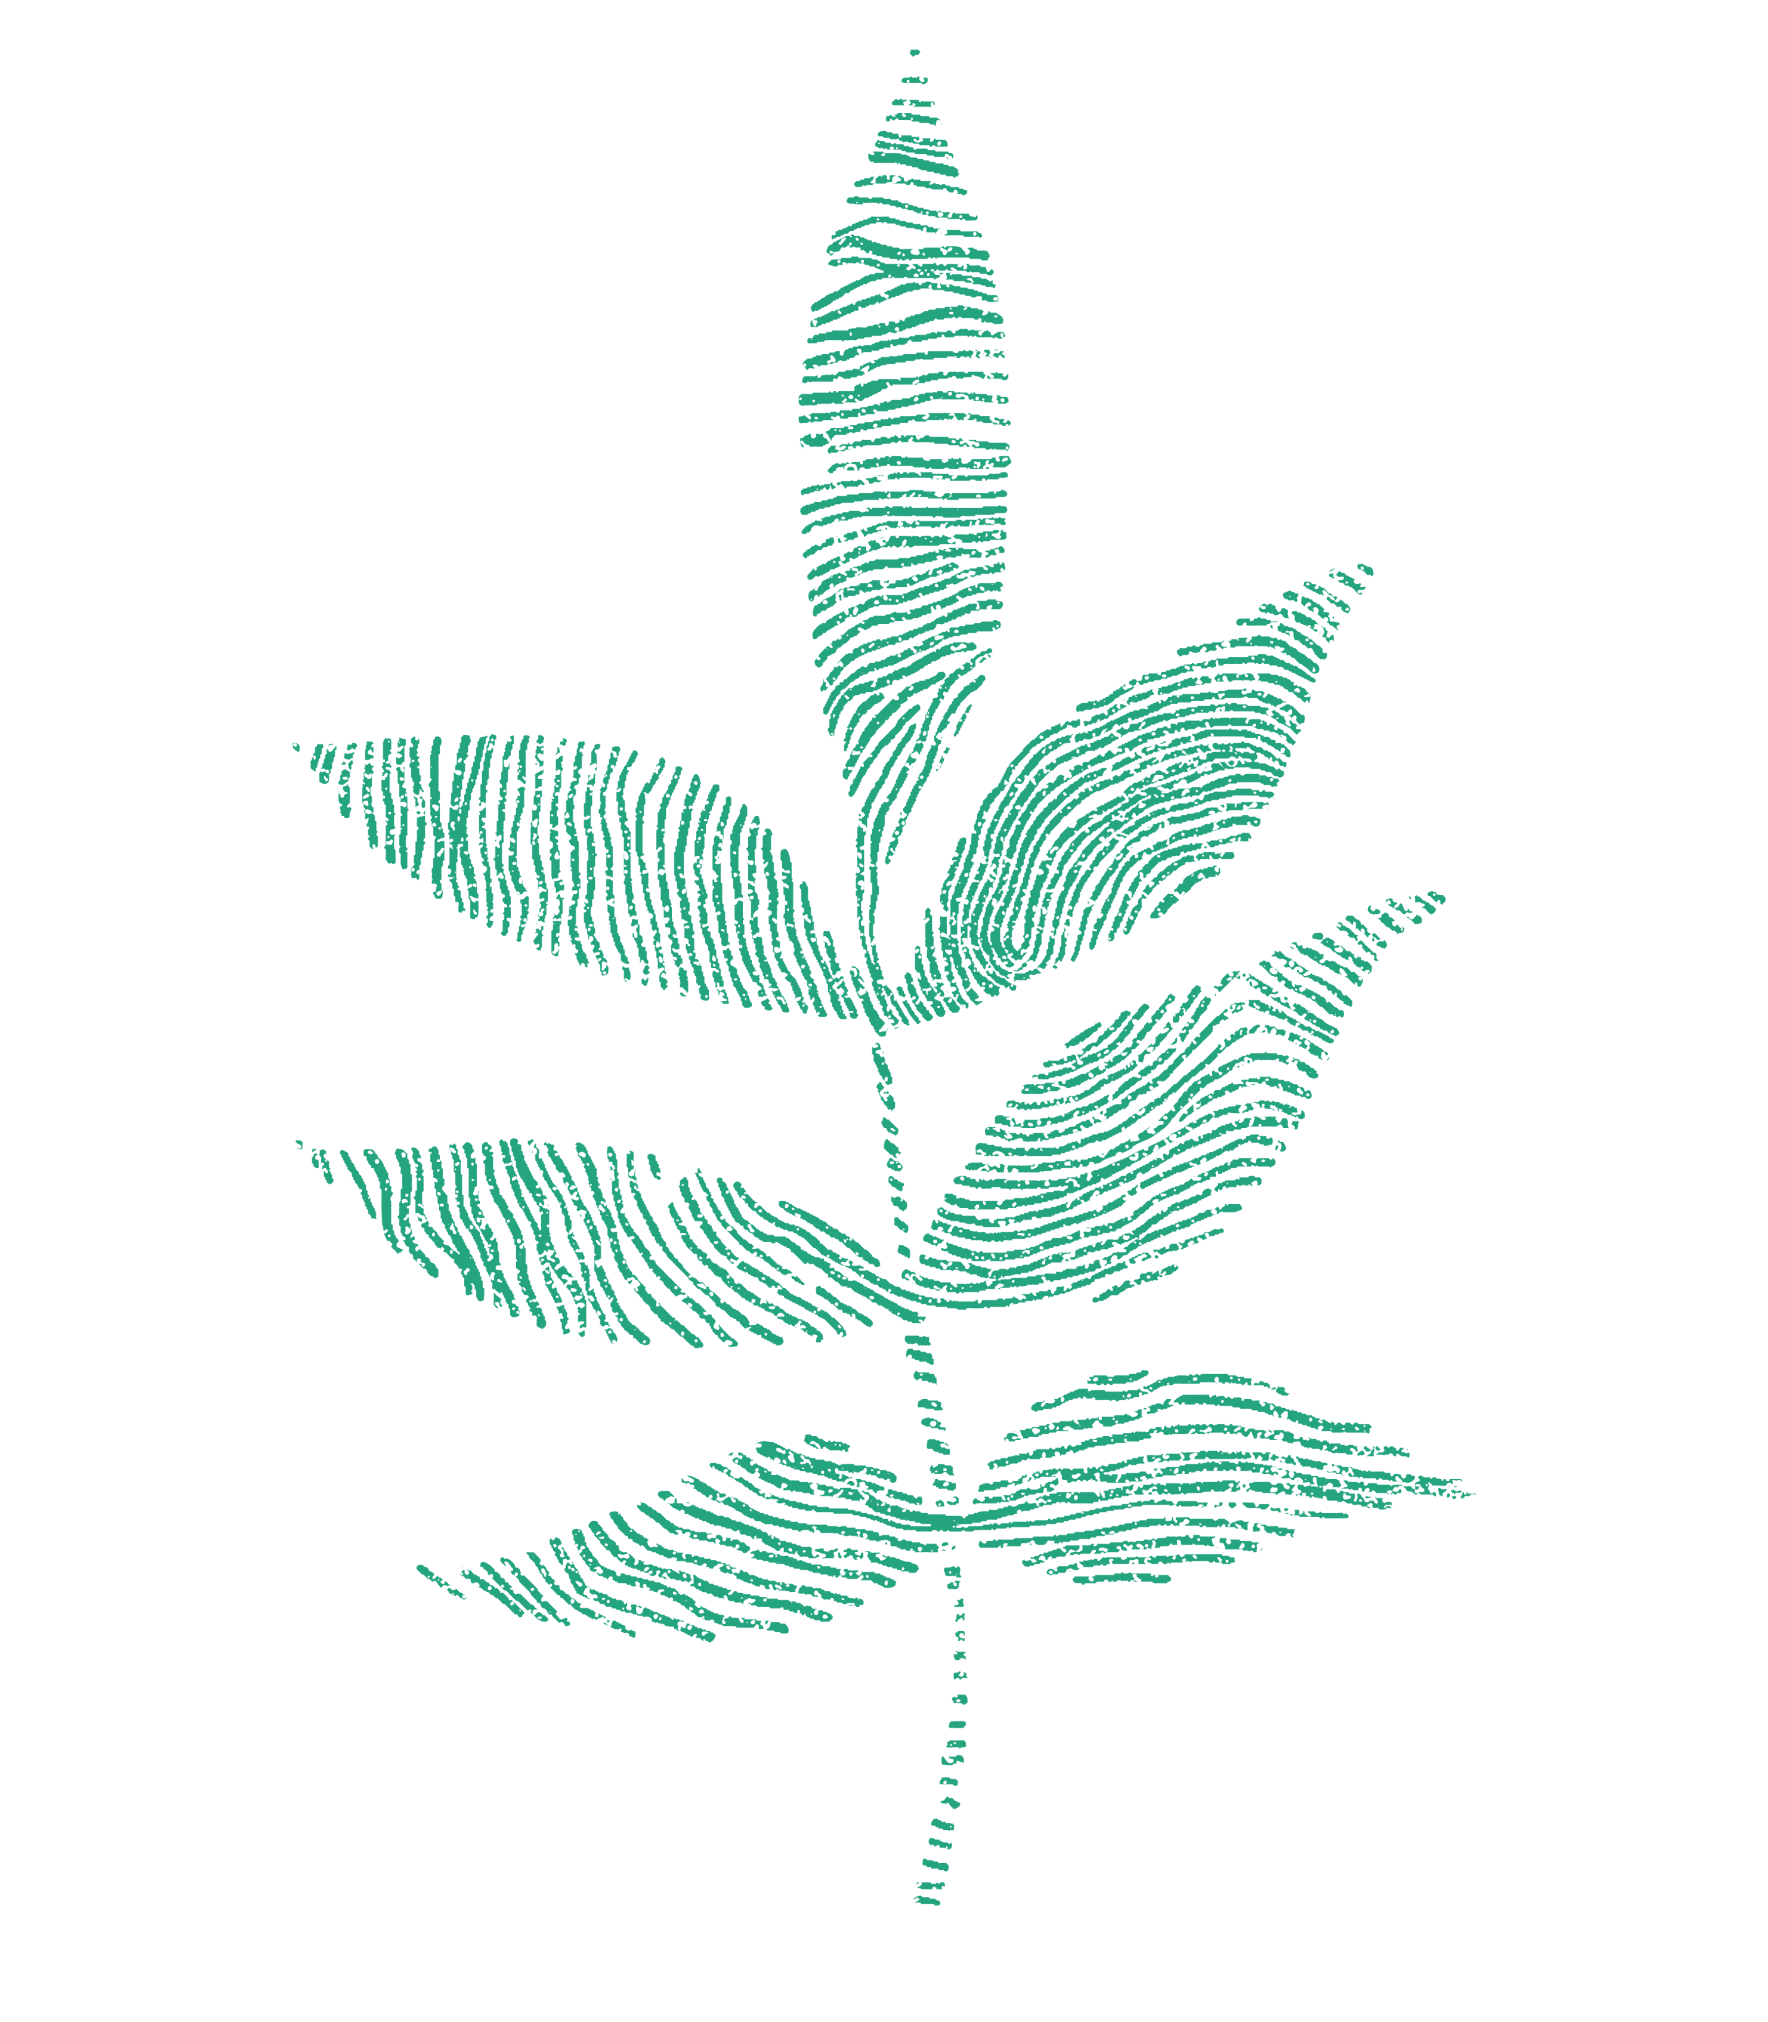 Decorative plant illustration